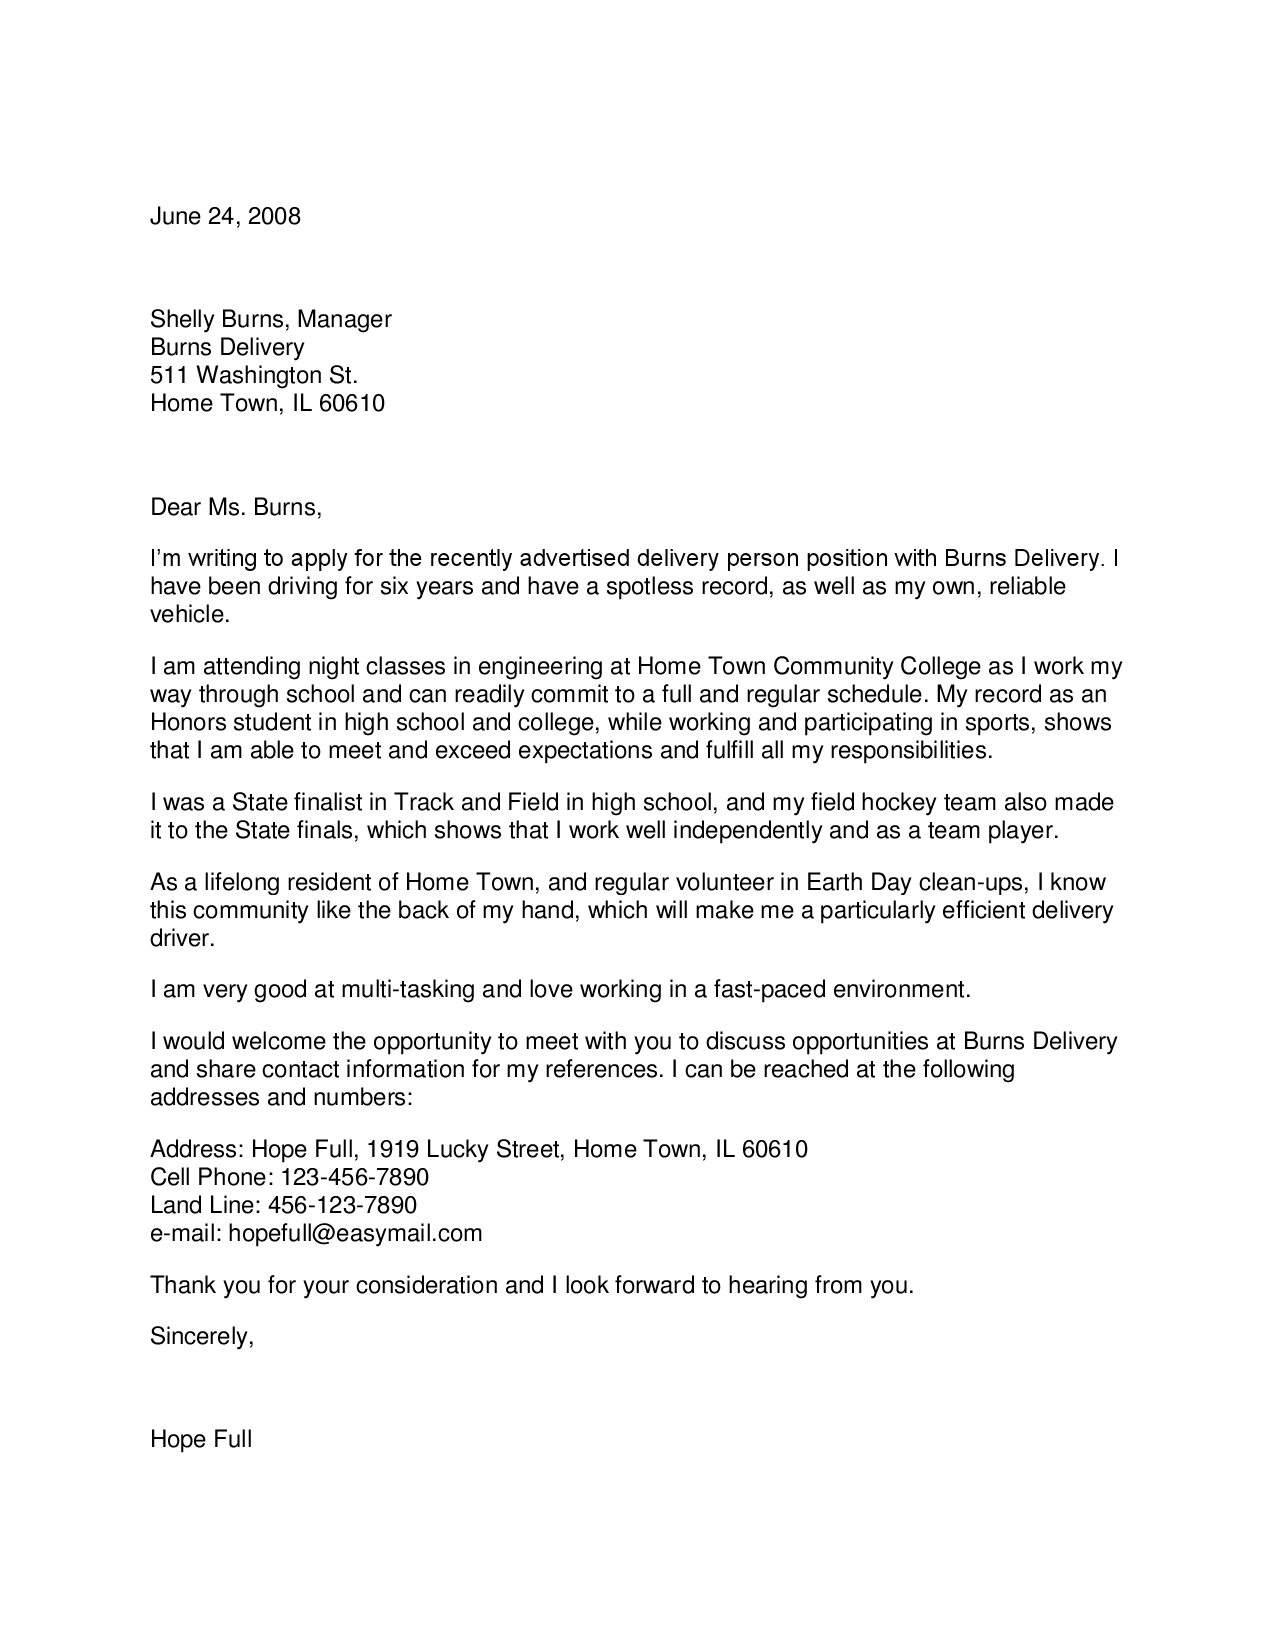 Letter Happytom Delivery Driver Cover What Letters Related Post How Write Application Cover Letter For Resume Resume Writing Format Resume Writing Services